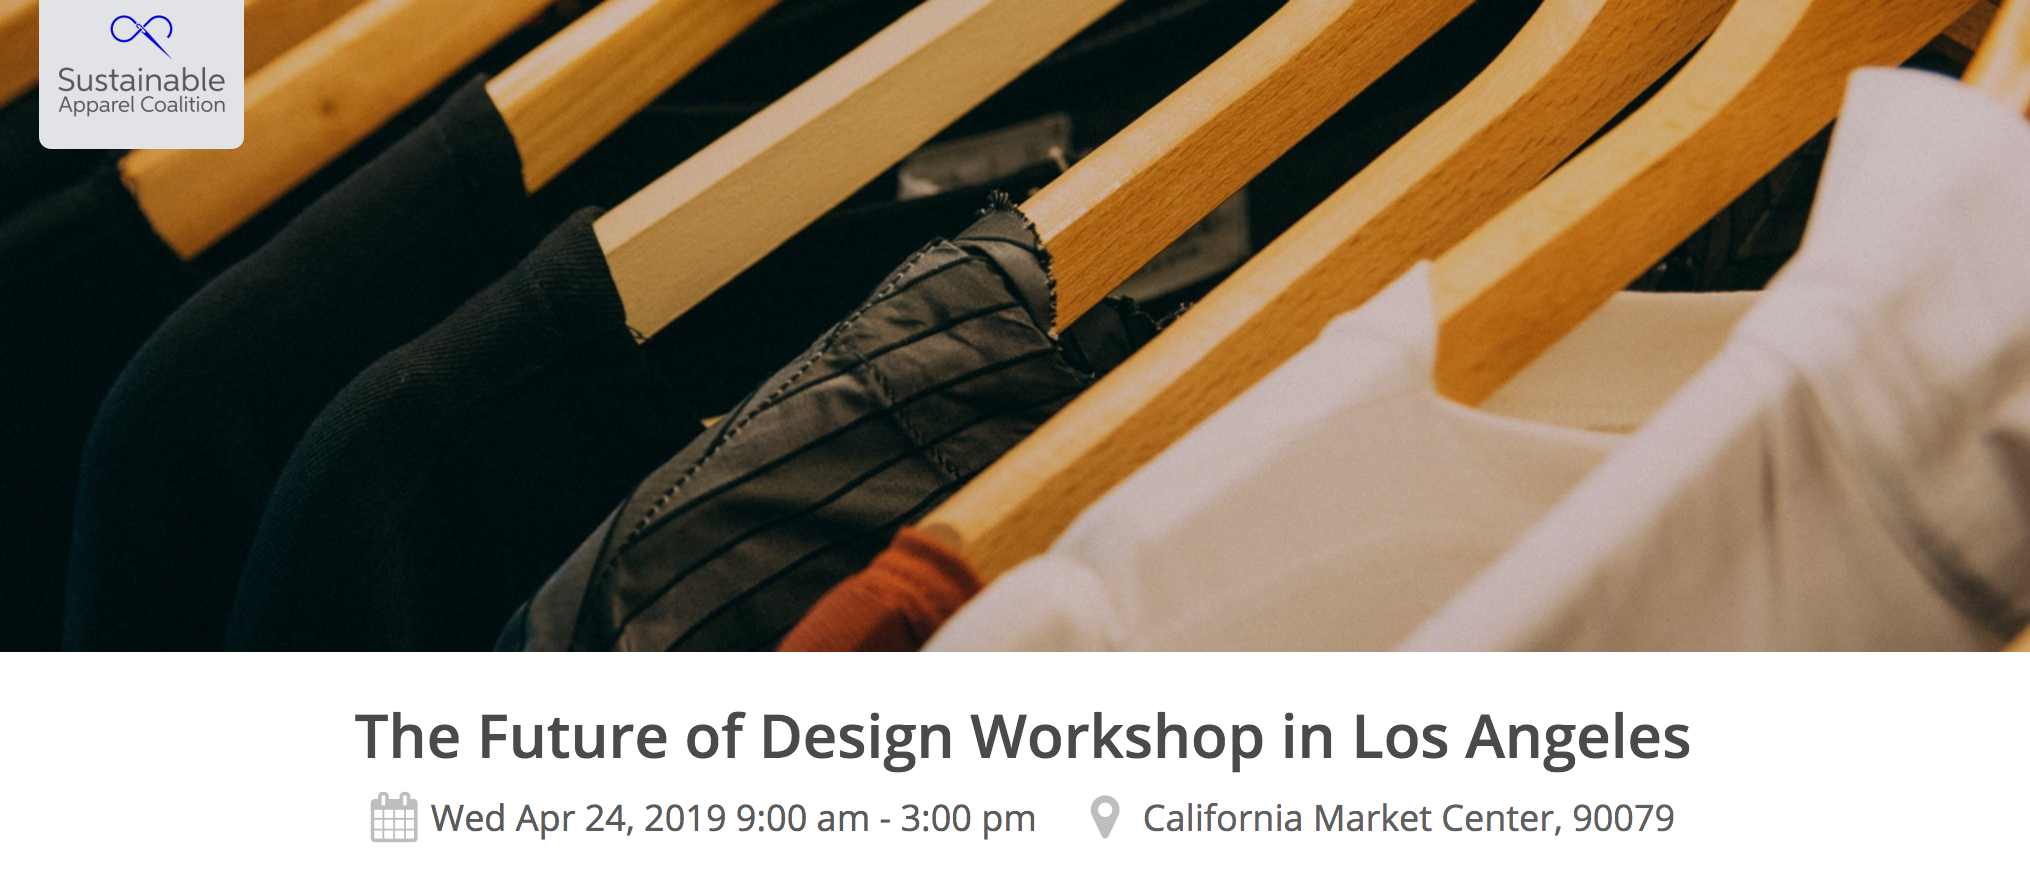 The Future of Design Workshop in Los Angeles